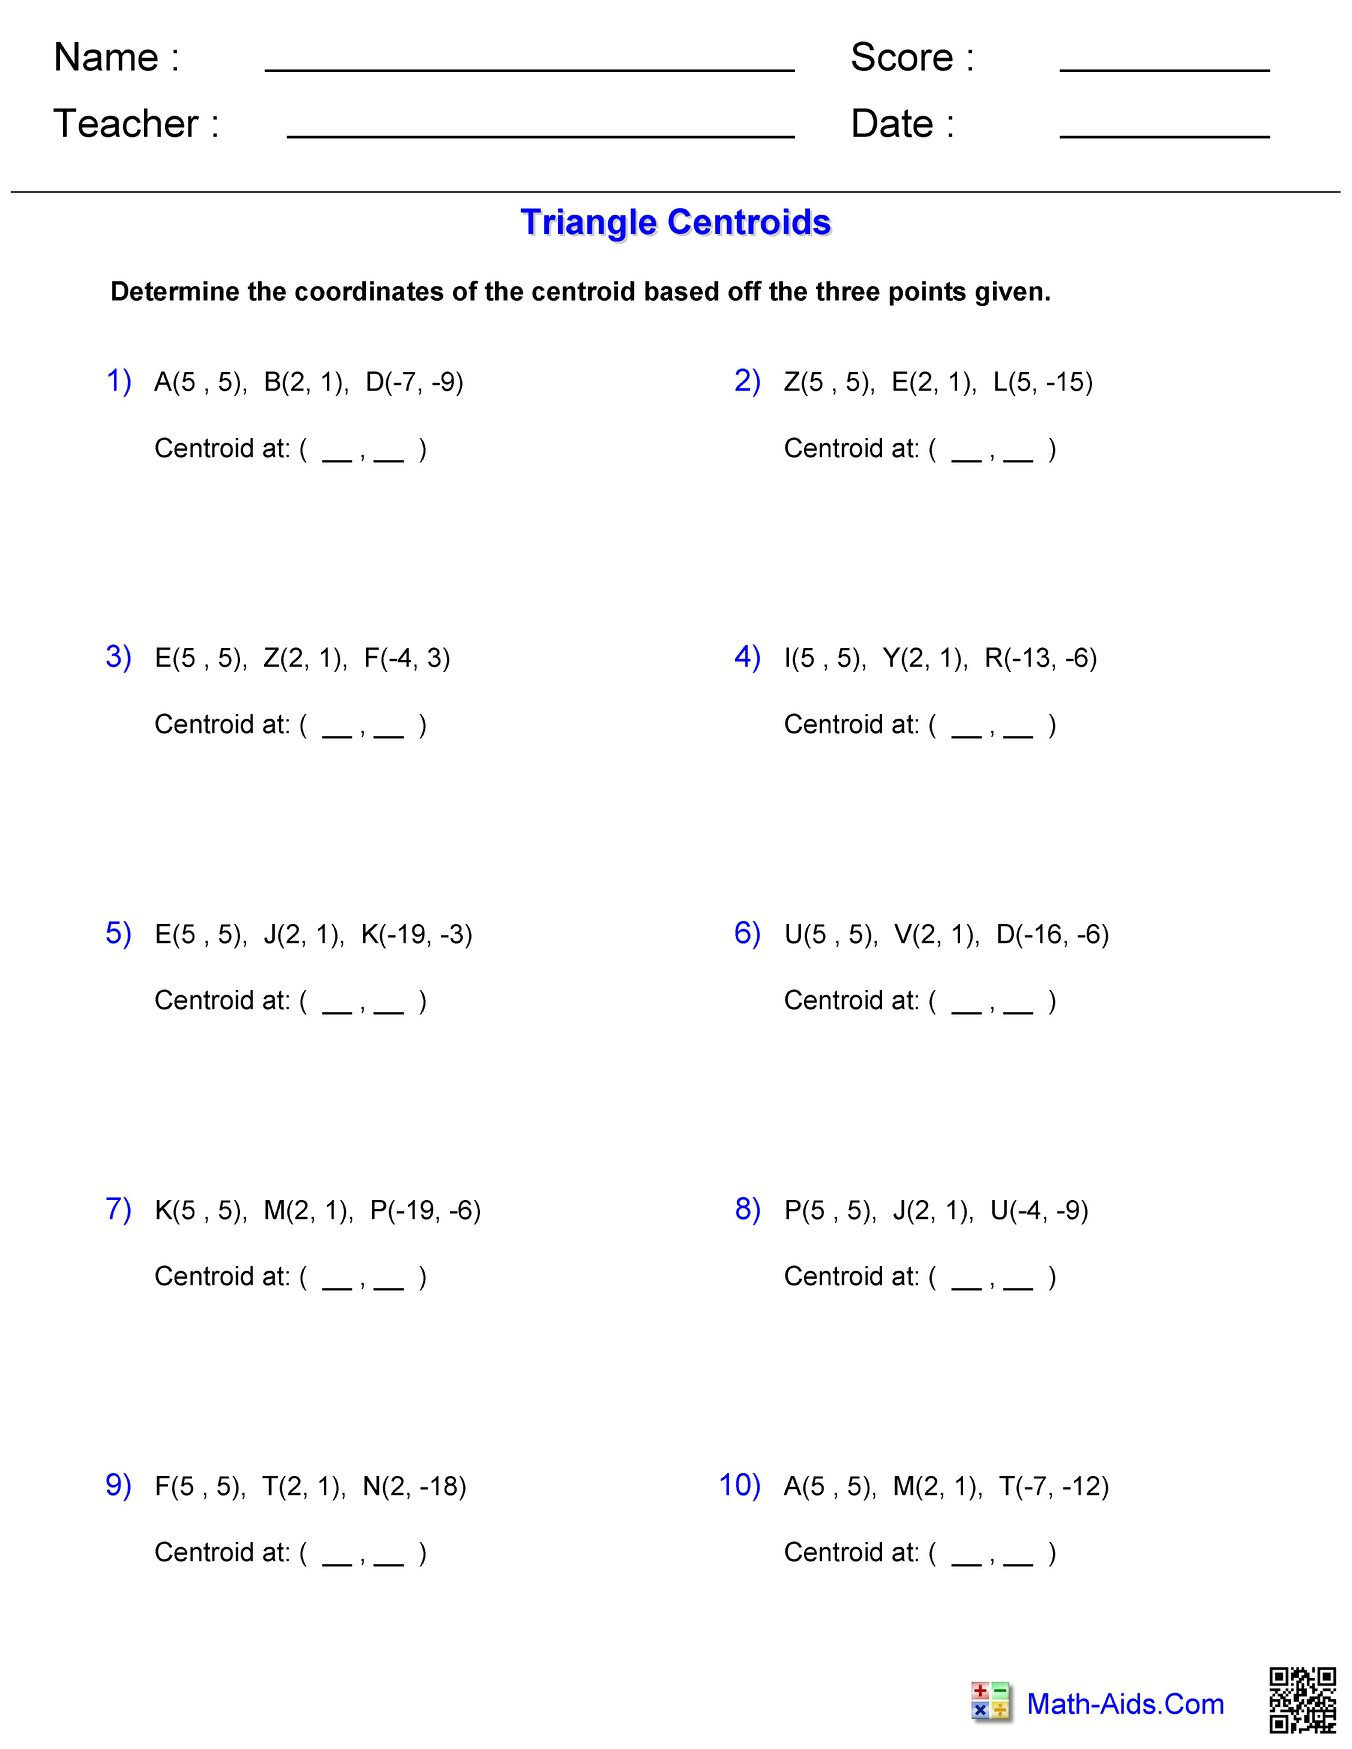 Triangle Centroids Worksheet 2 Hoeden At Home